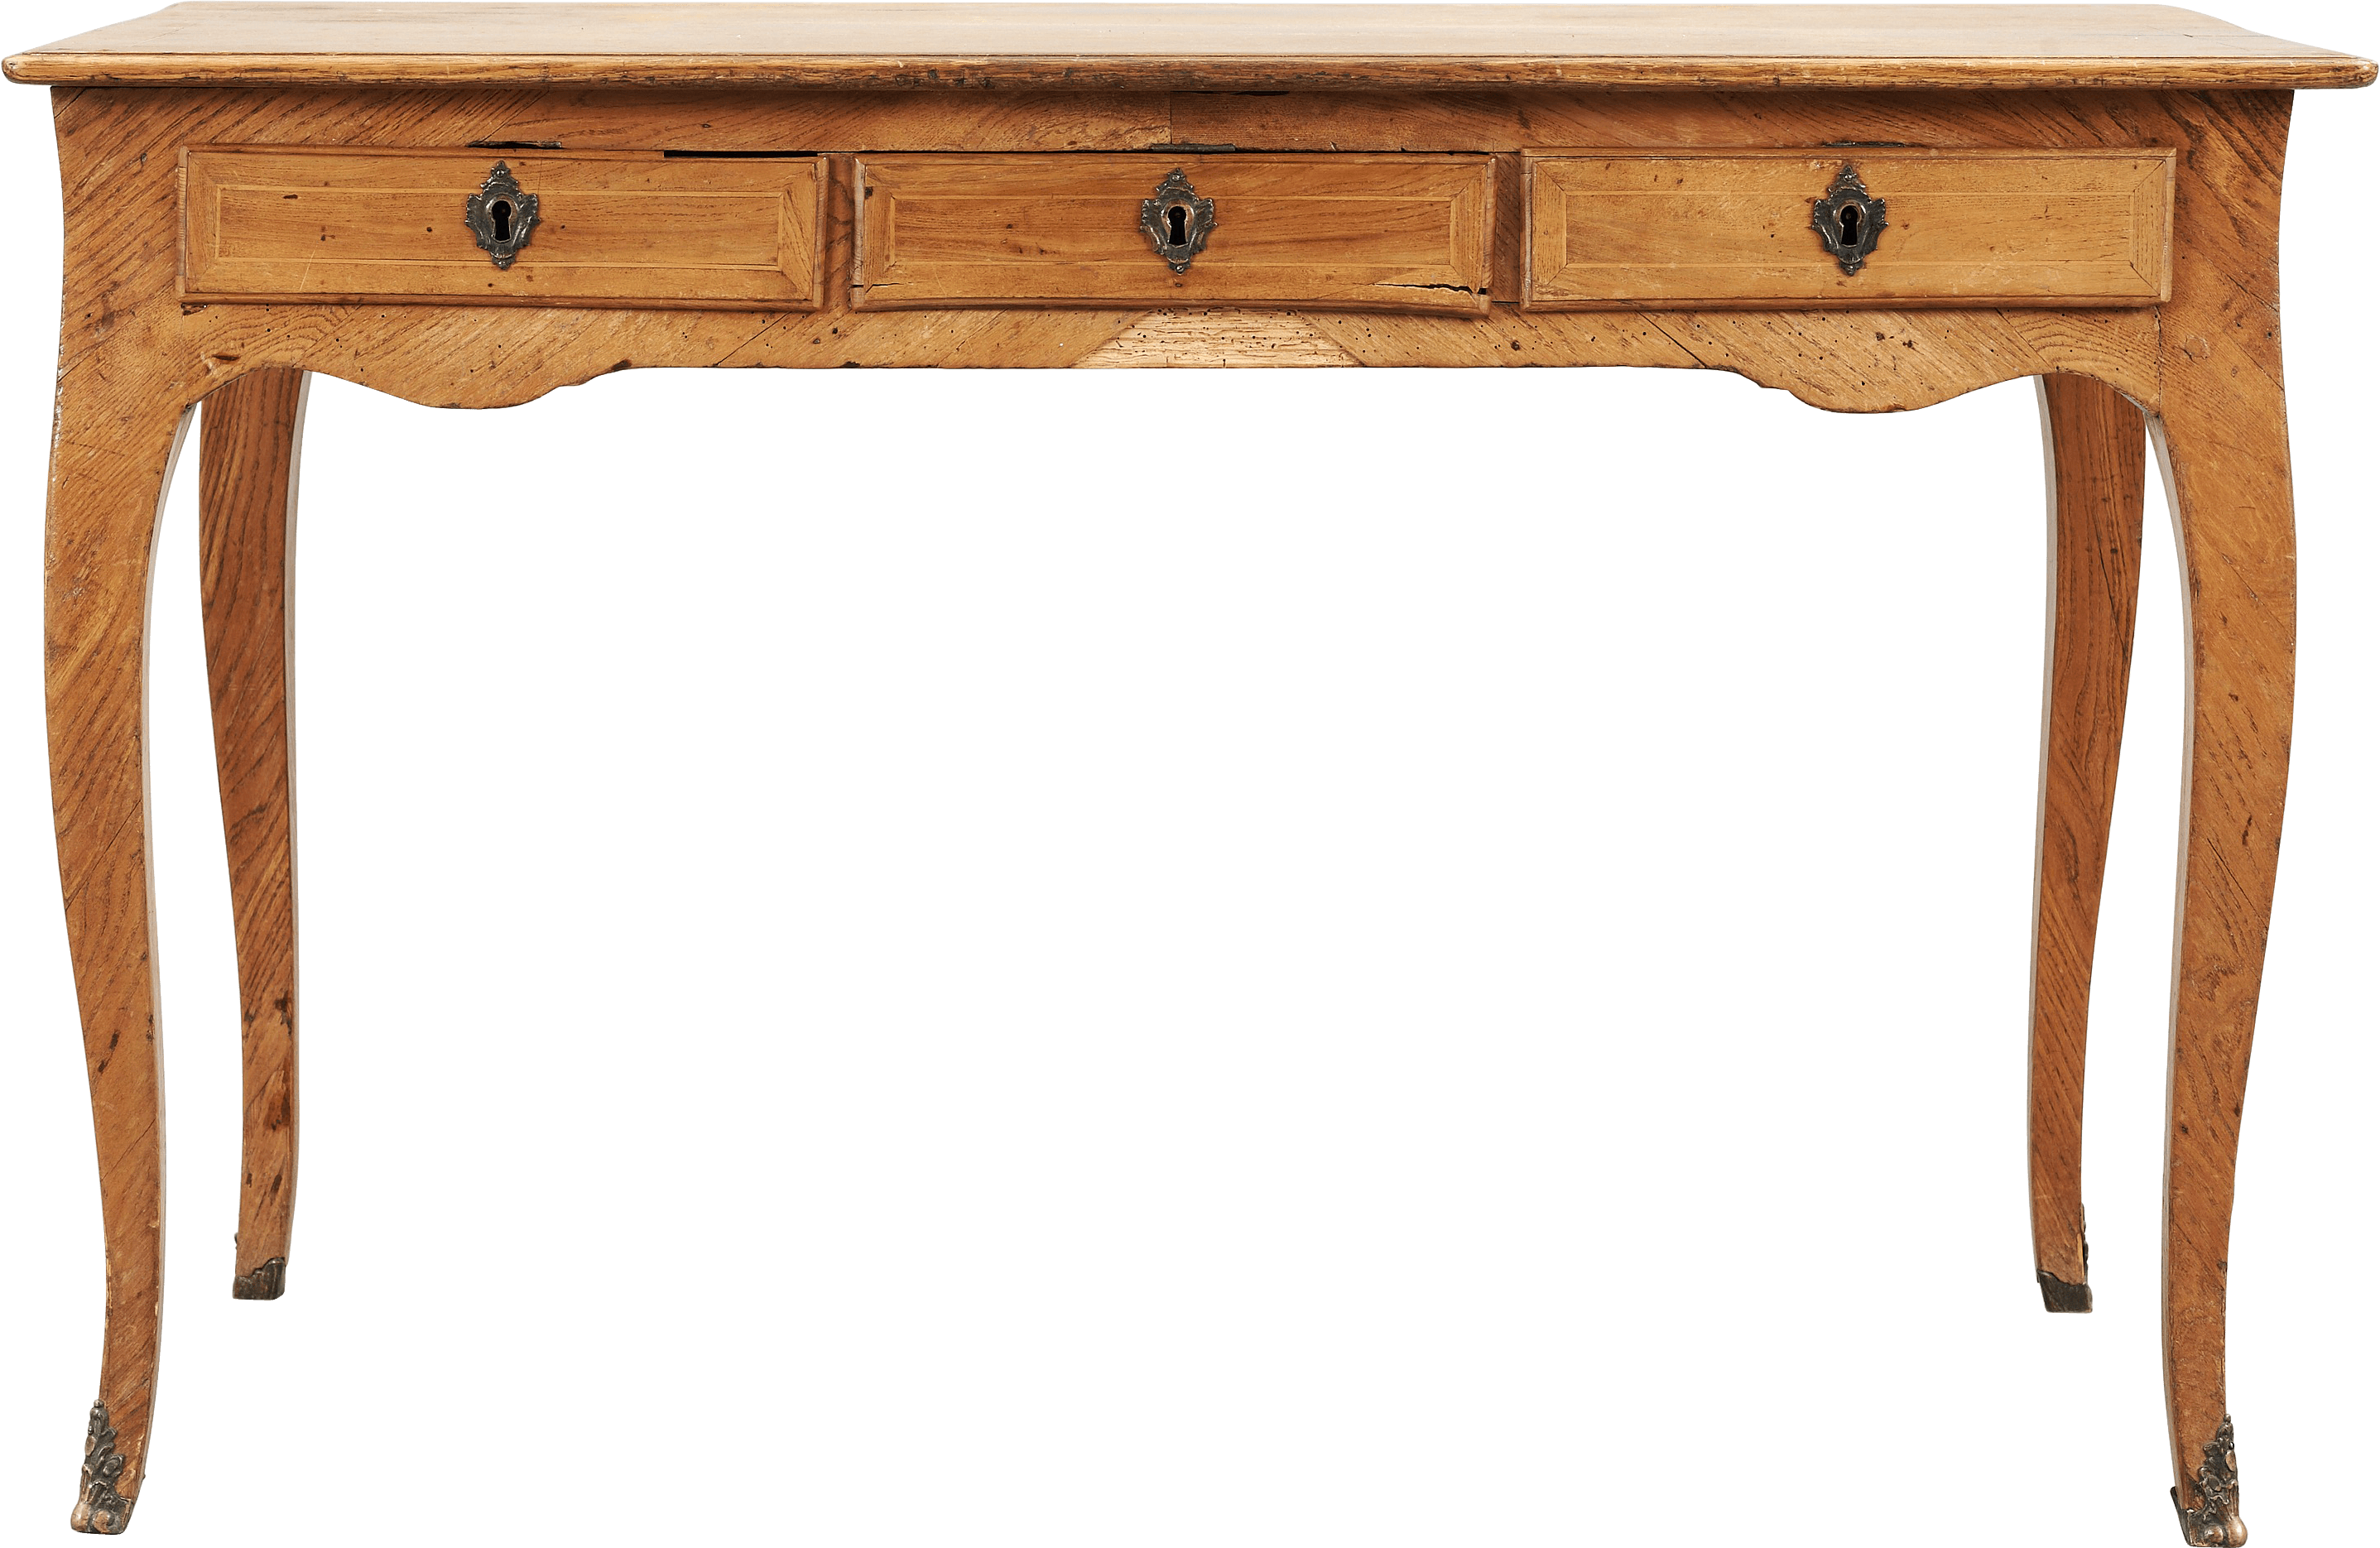 Wood desk png. Old wooden table transparent